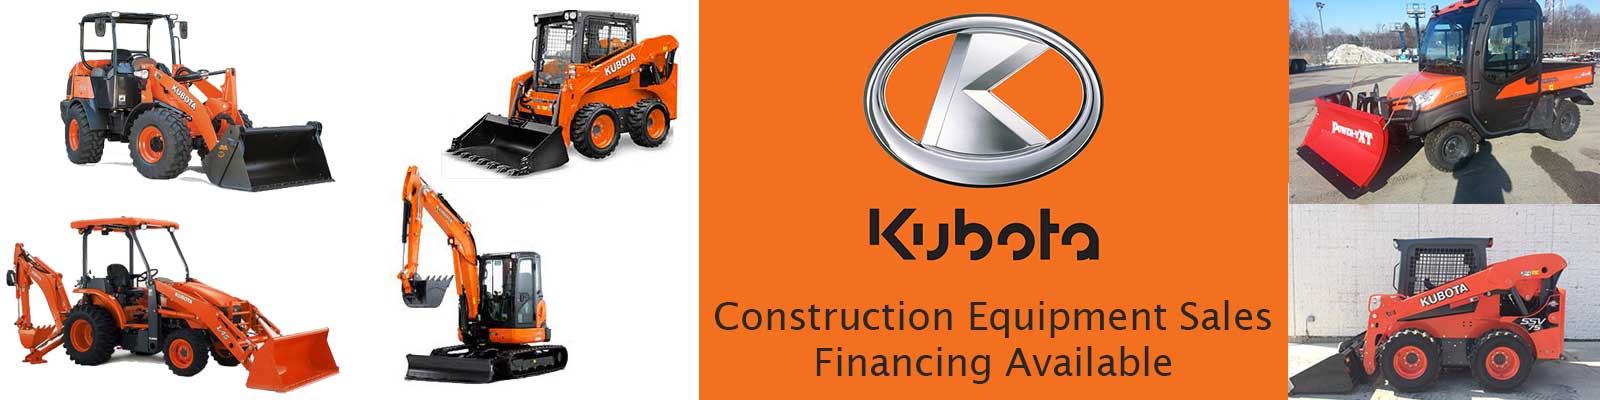 Buy Kubota equipment in Brunswick, Avon, Akron OH, Westlake, Avon Lake, Beachwood, Northeast Ohio